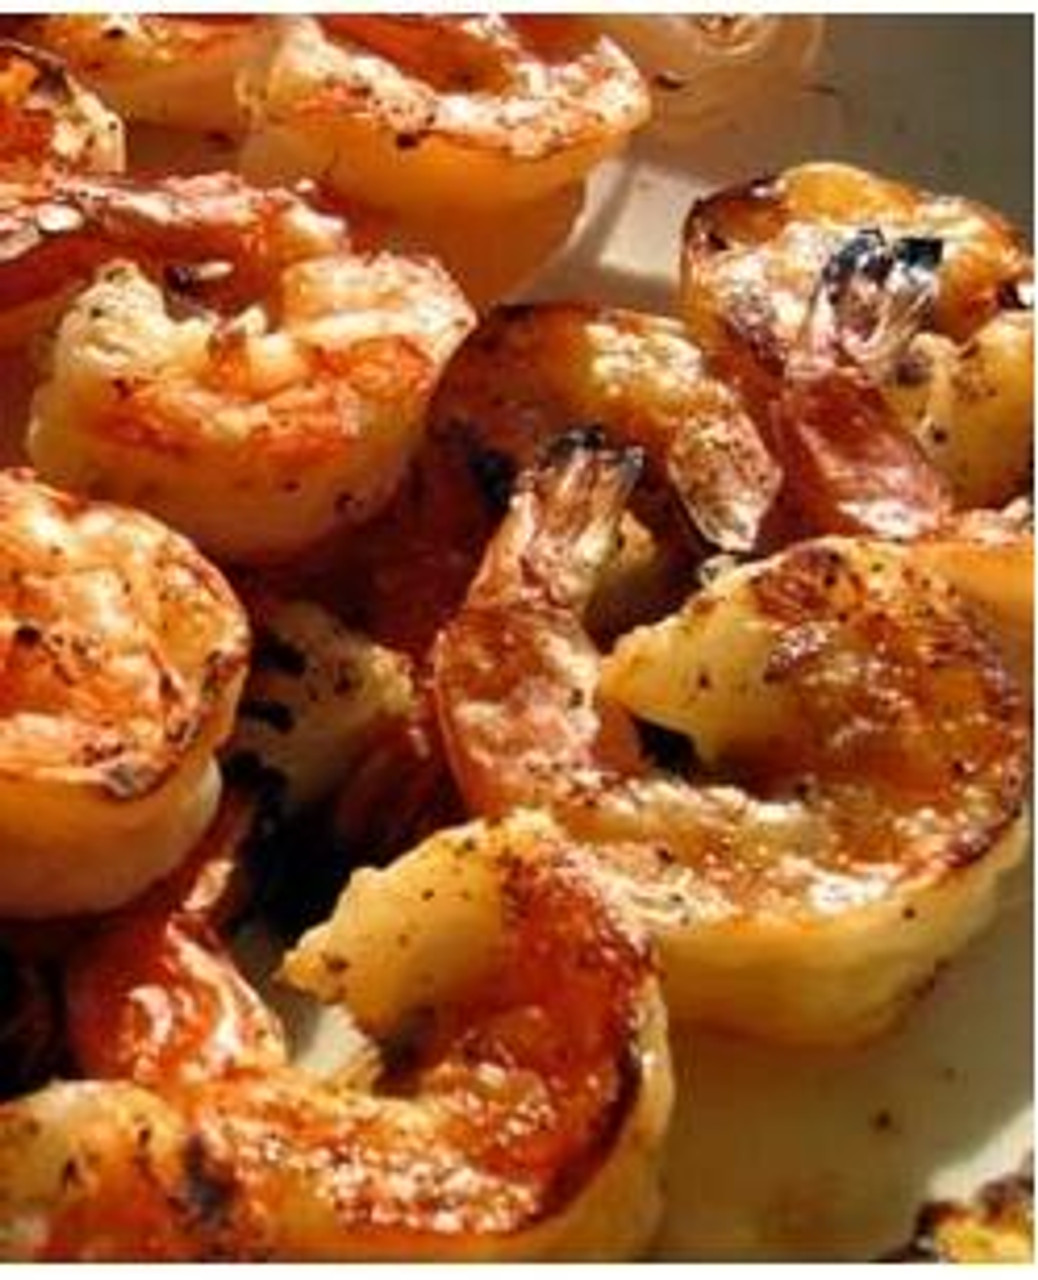 Grilled Shrimp with Shallots & Balsamic Dressing